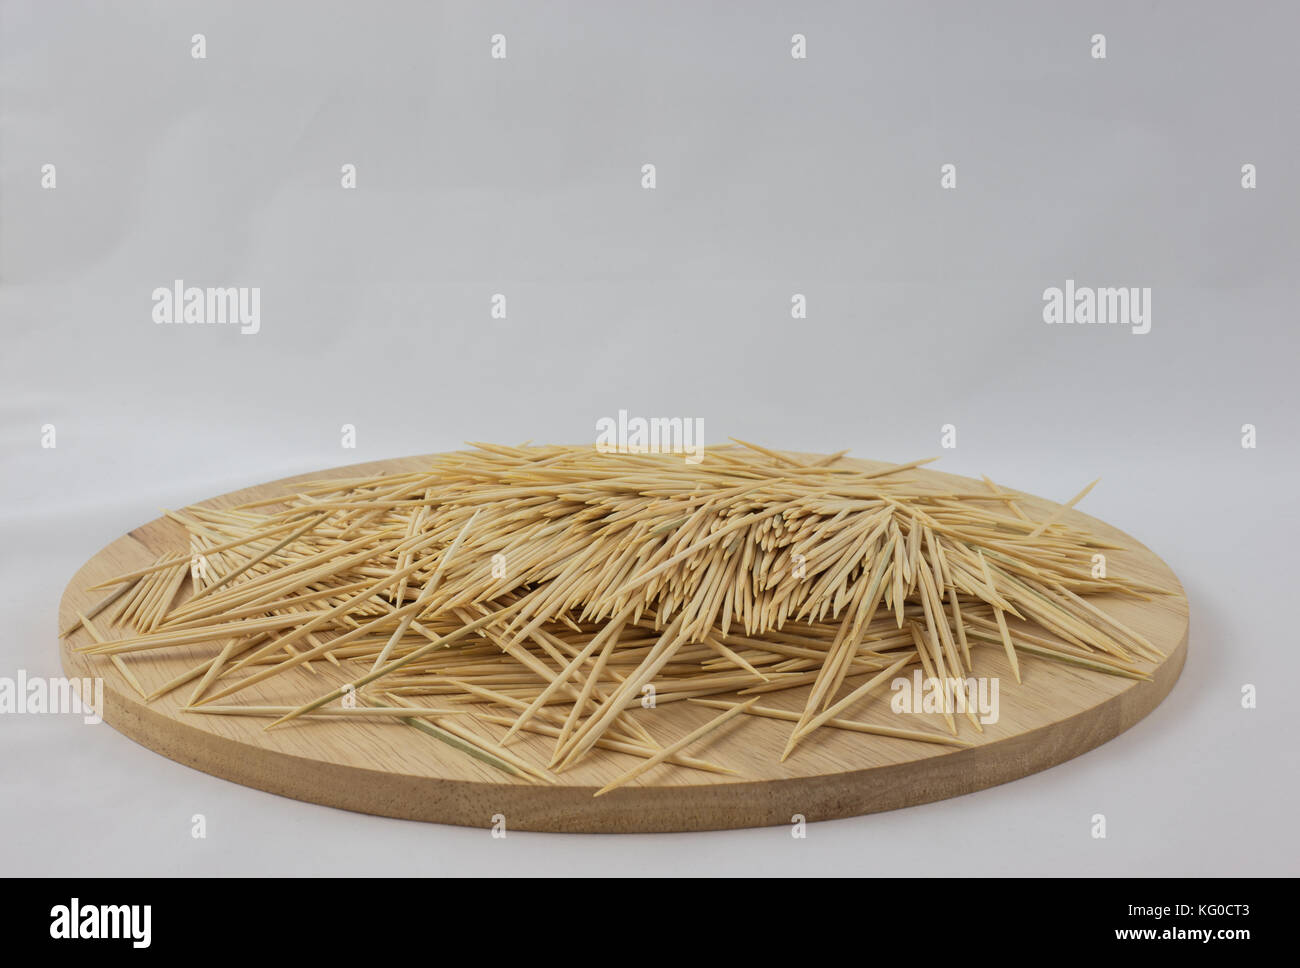 Toothpicks piled on a round wooden plate - Stock Image